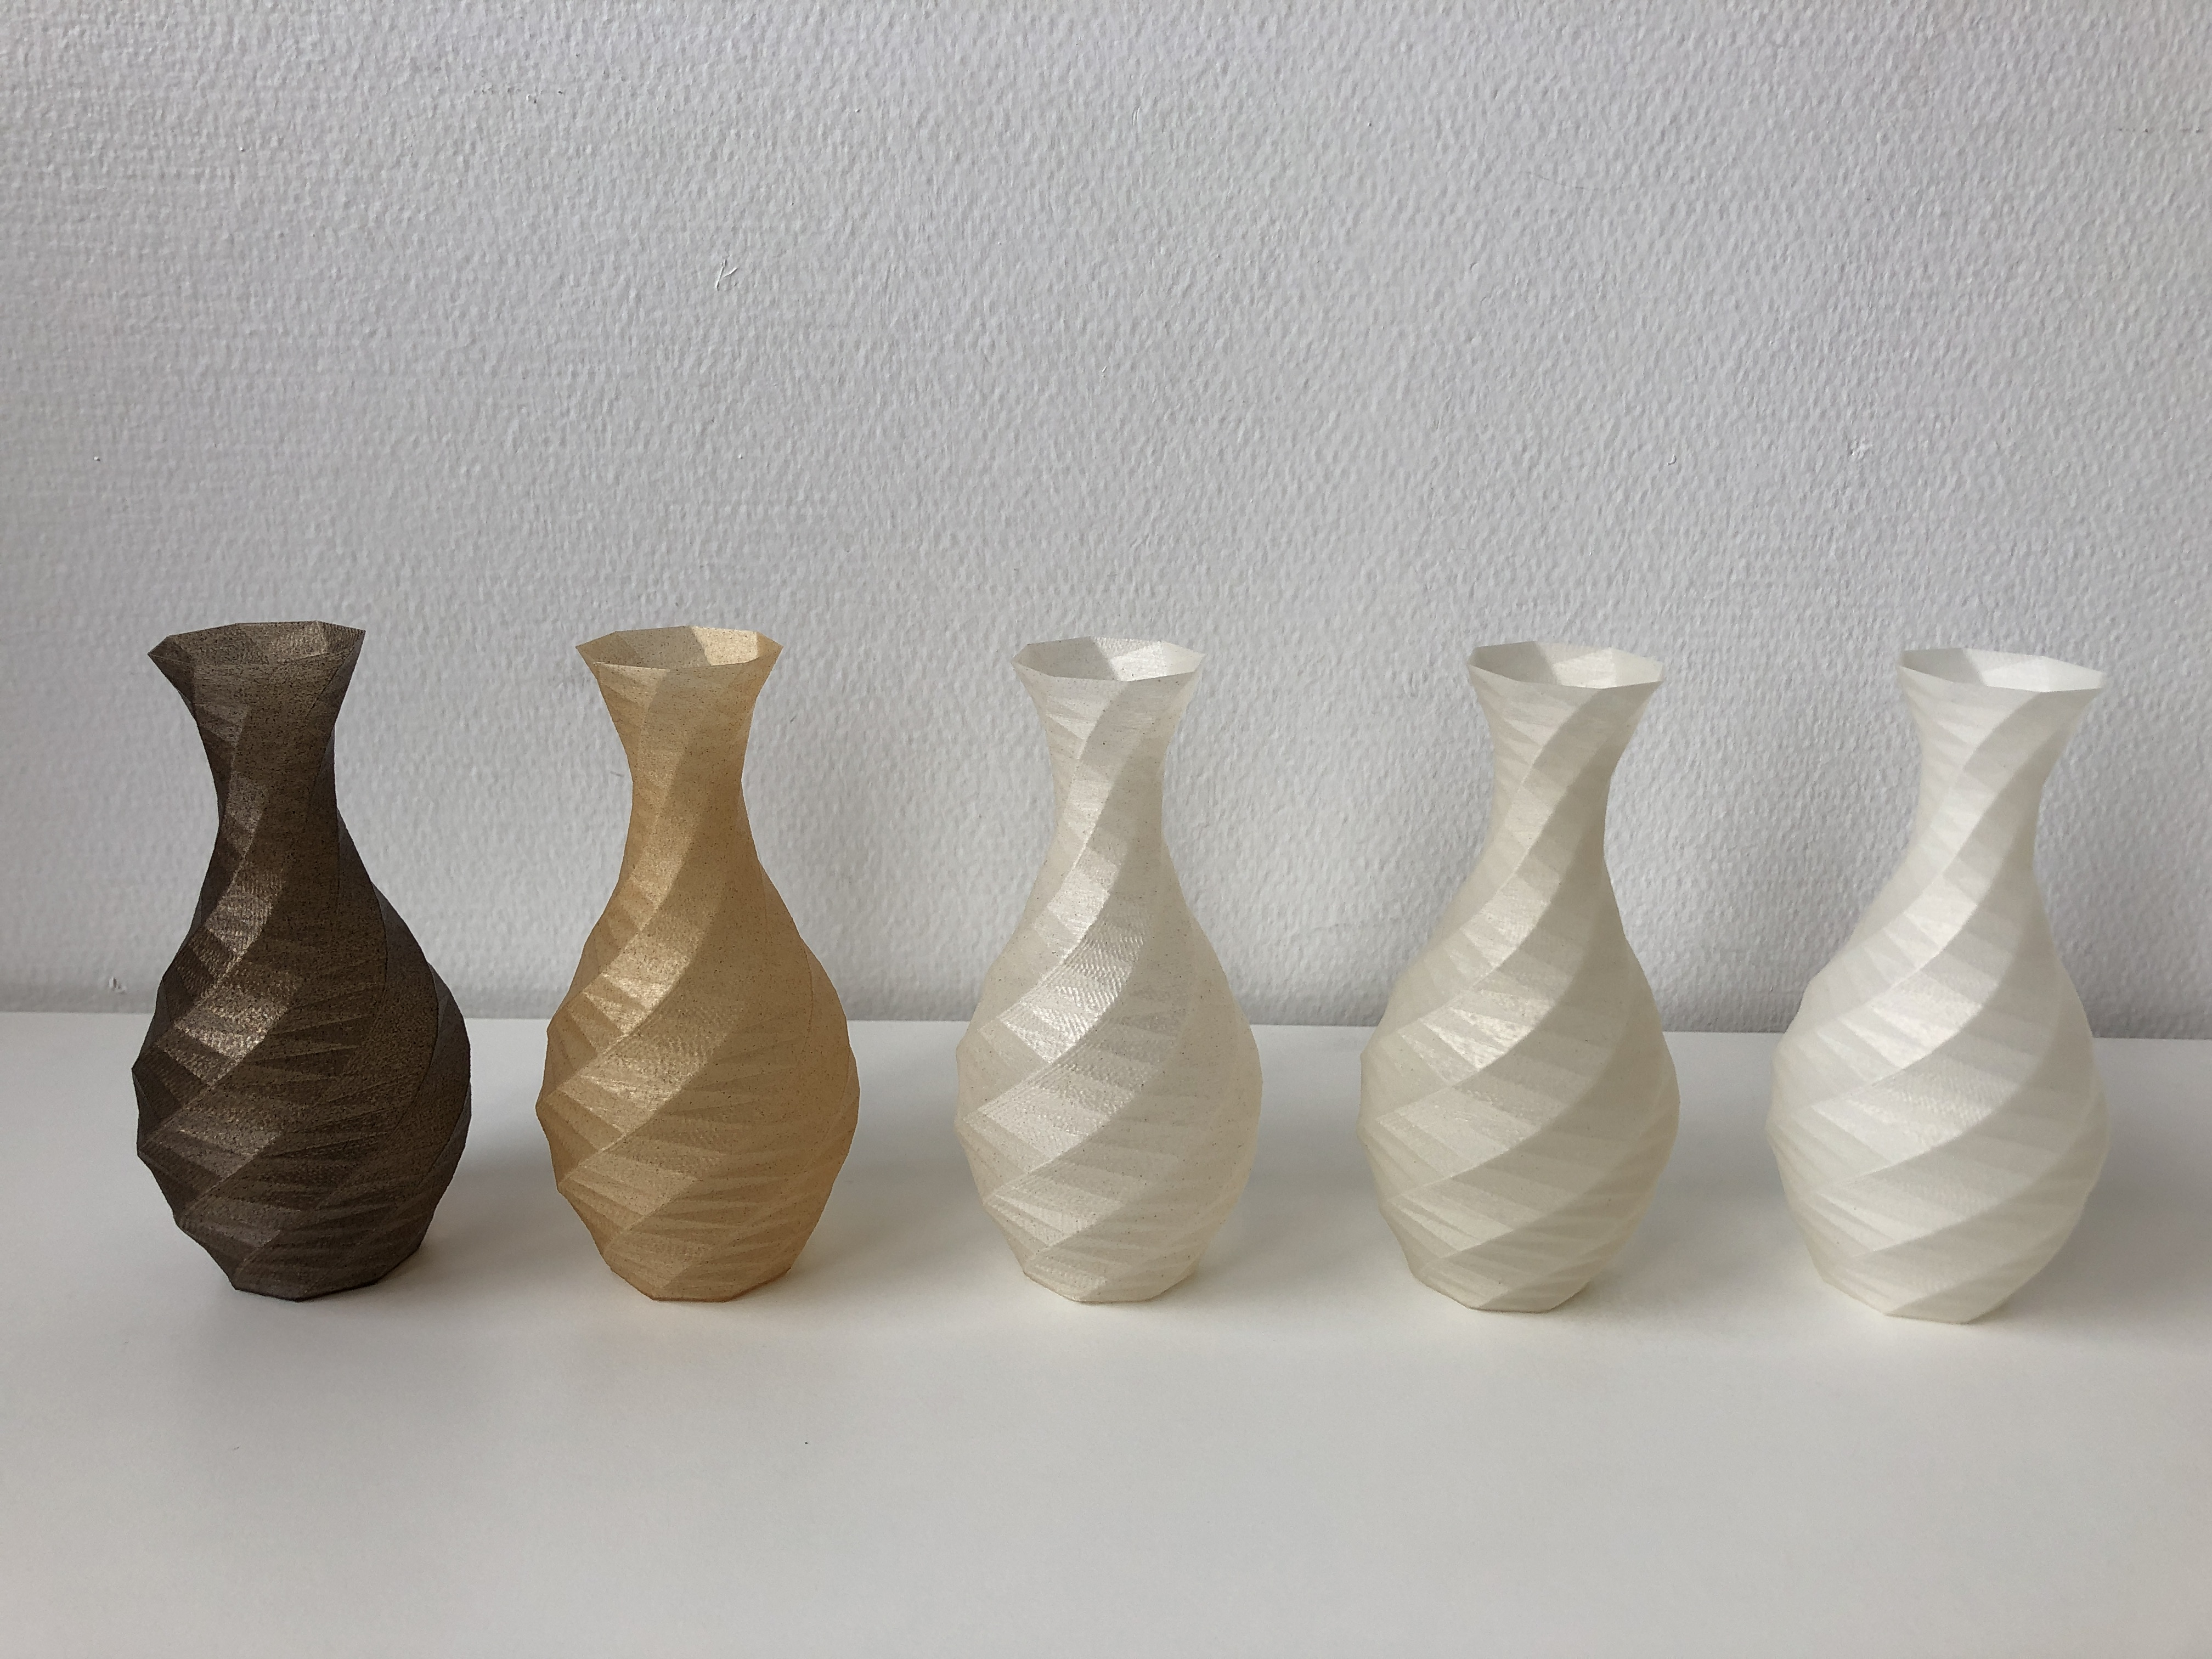 Vases printed with biocomposed filaments.